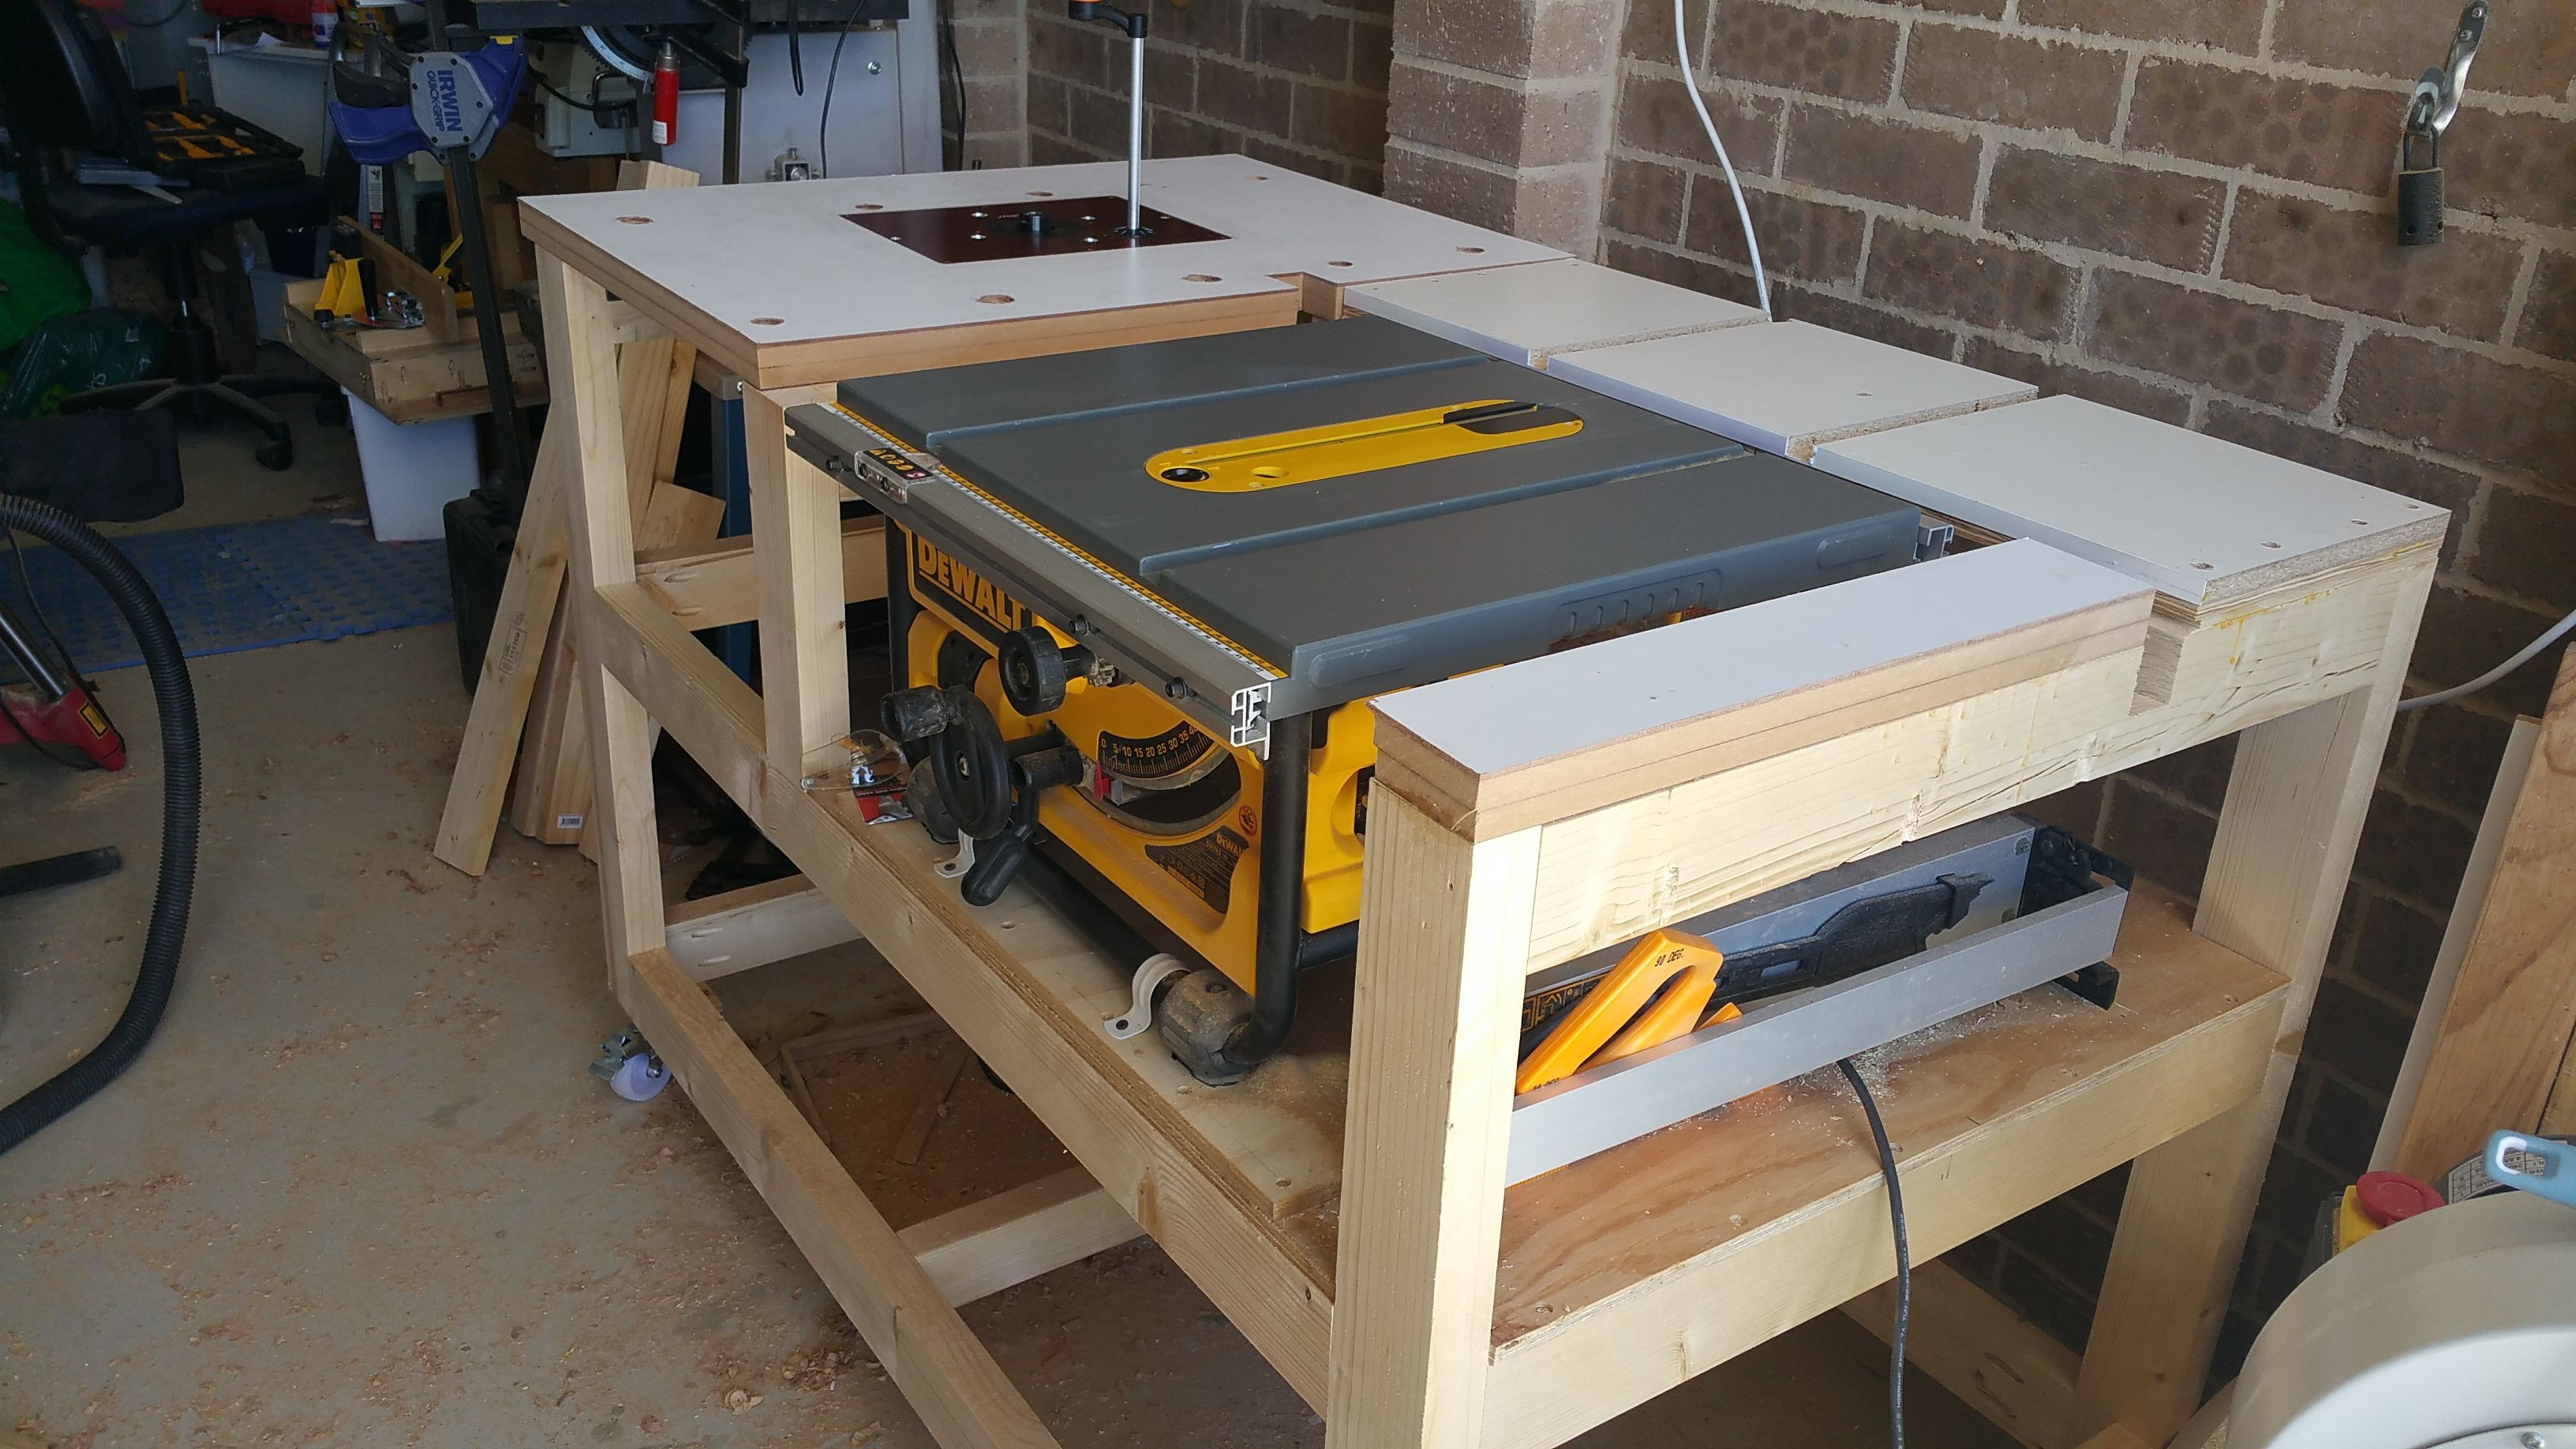 Workbench For Dw745 With Router Table And Outfeed I Made